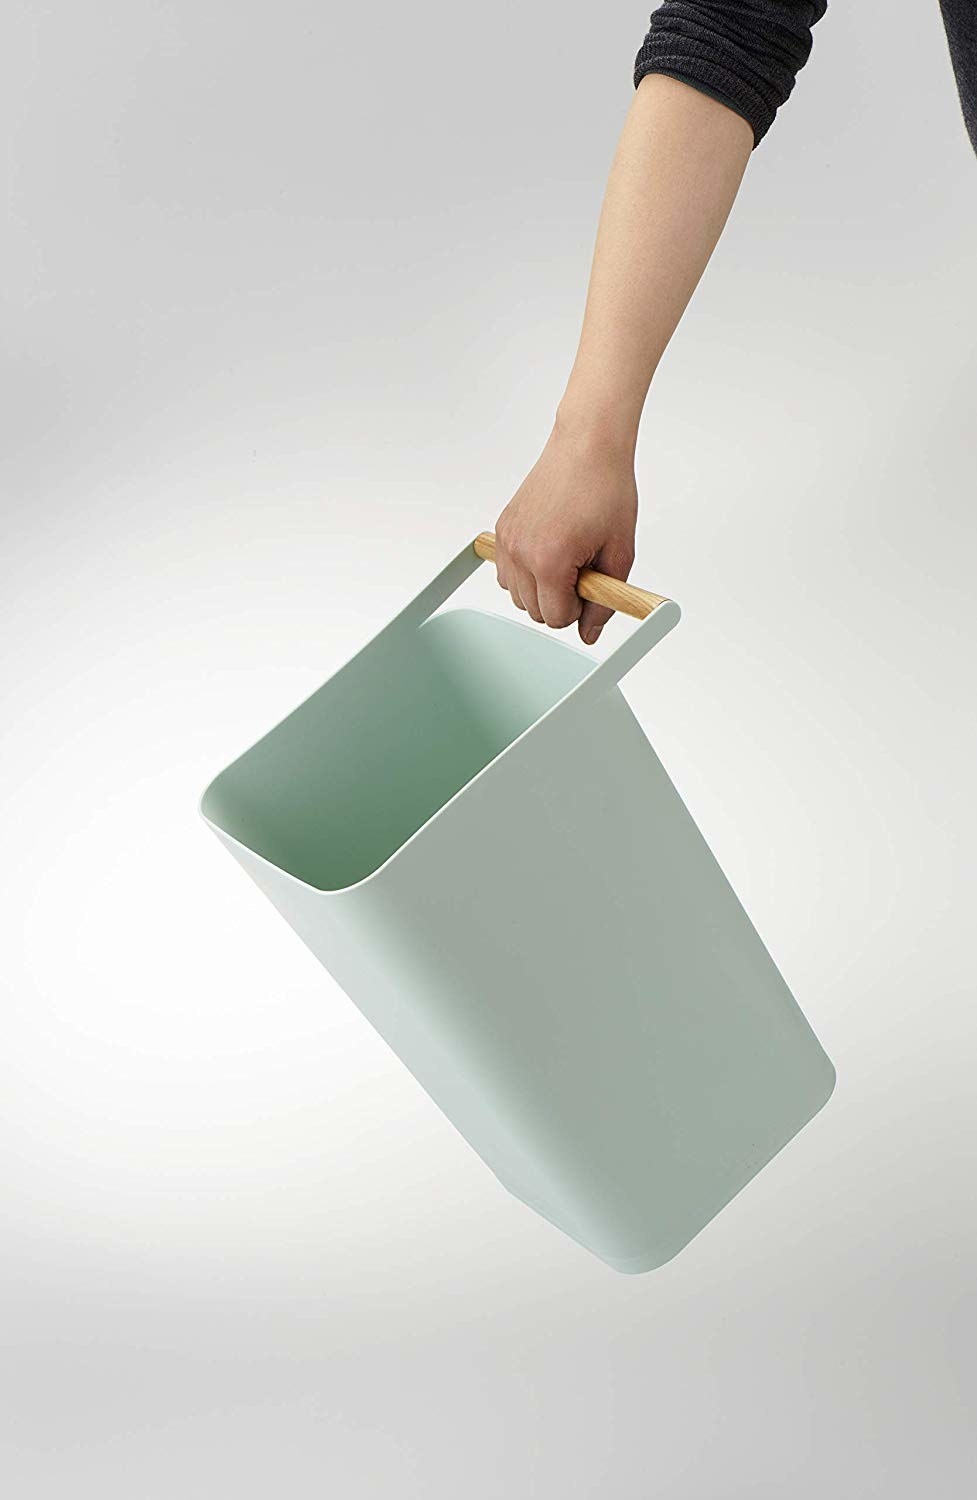 Mint trash can with wooden handle